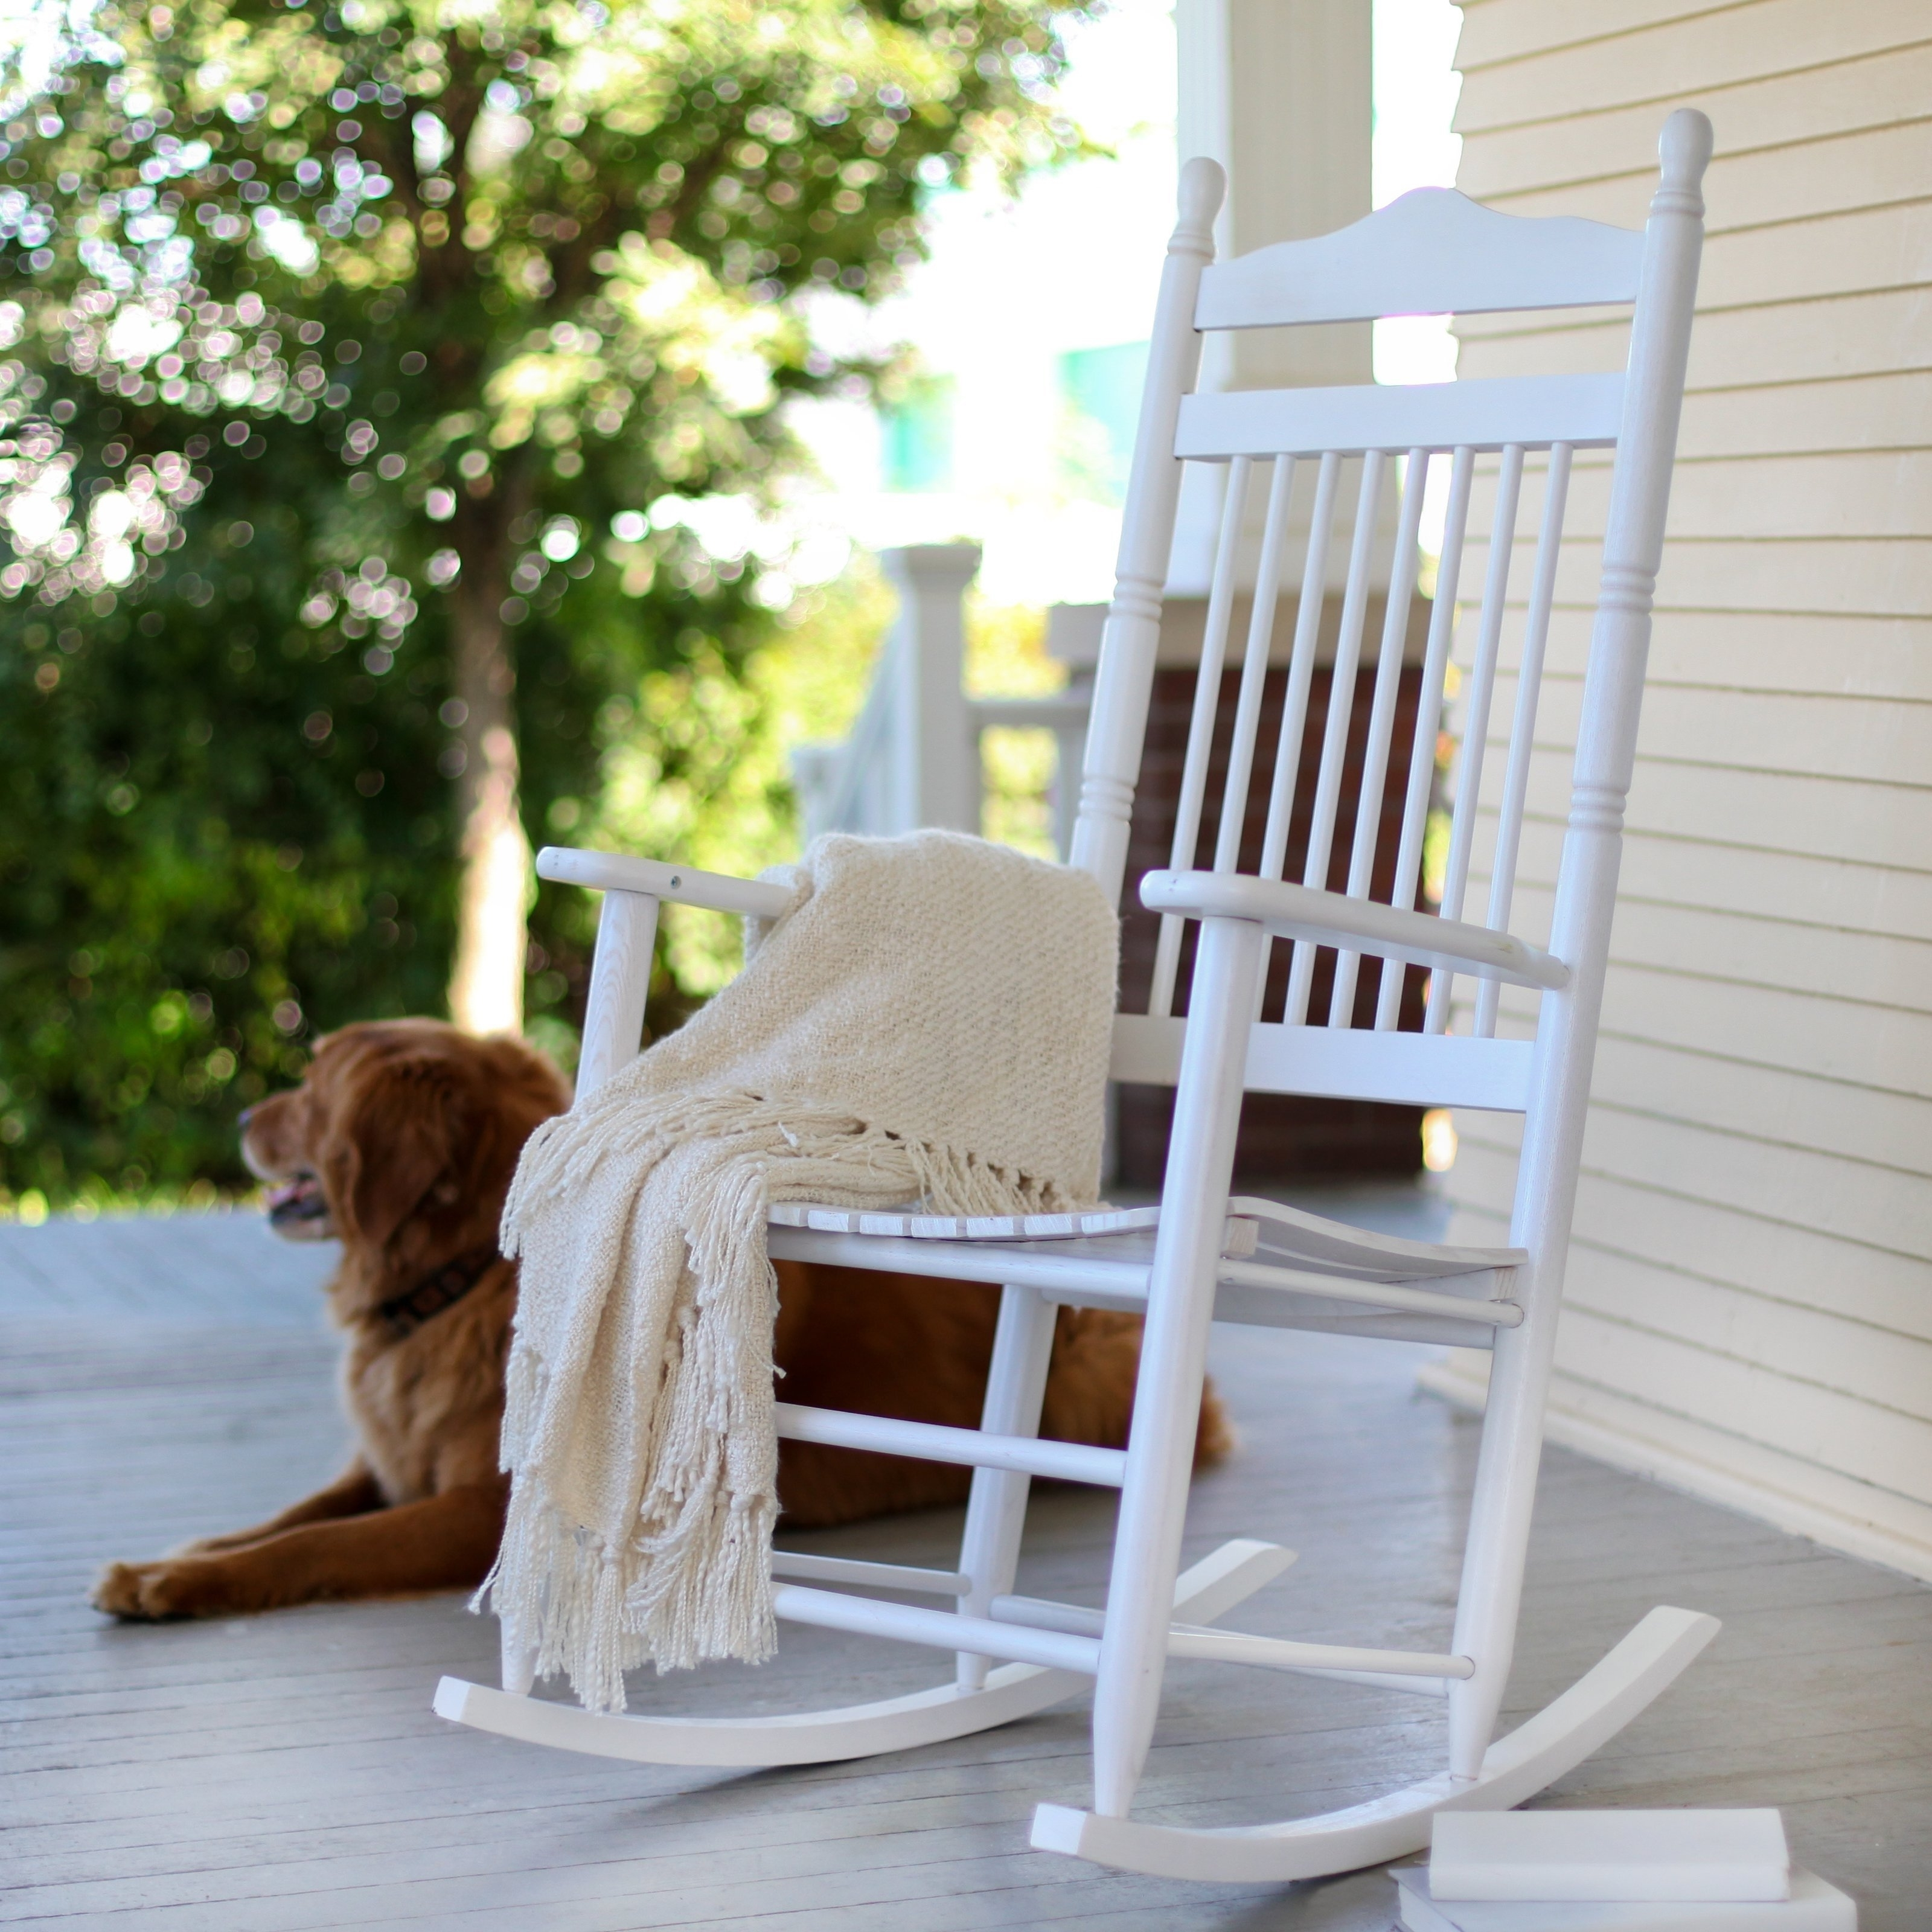 Best And Newest Medicine Rocking Chair Outdoor — The Kienandsweet Furnitures Inside Padded Patio Rocking Chairs (View 11 of 15)